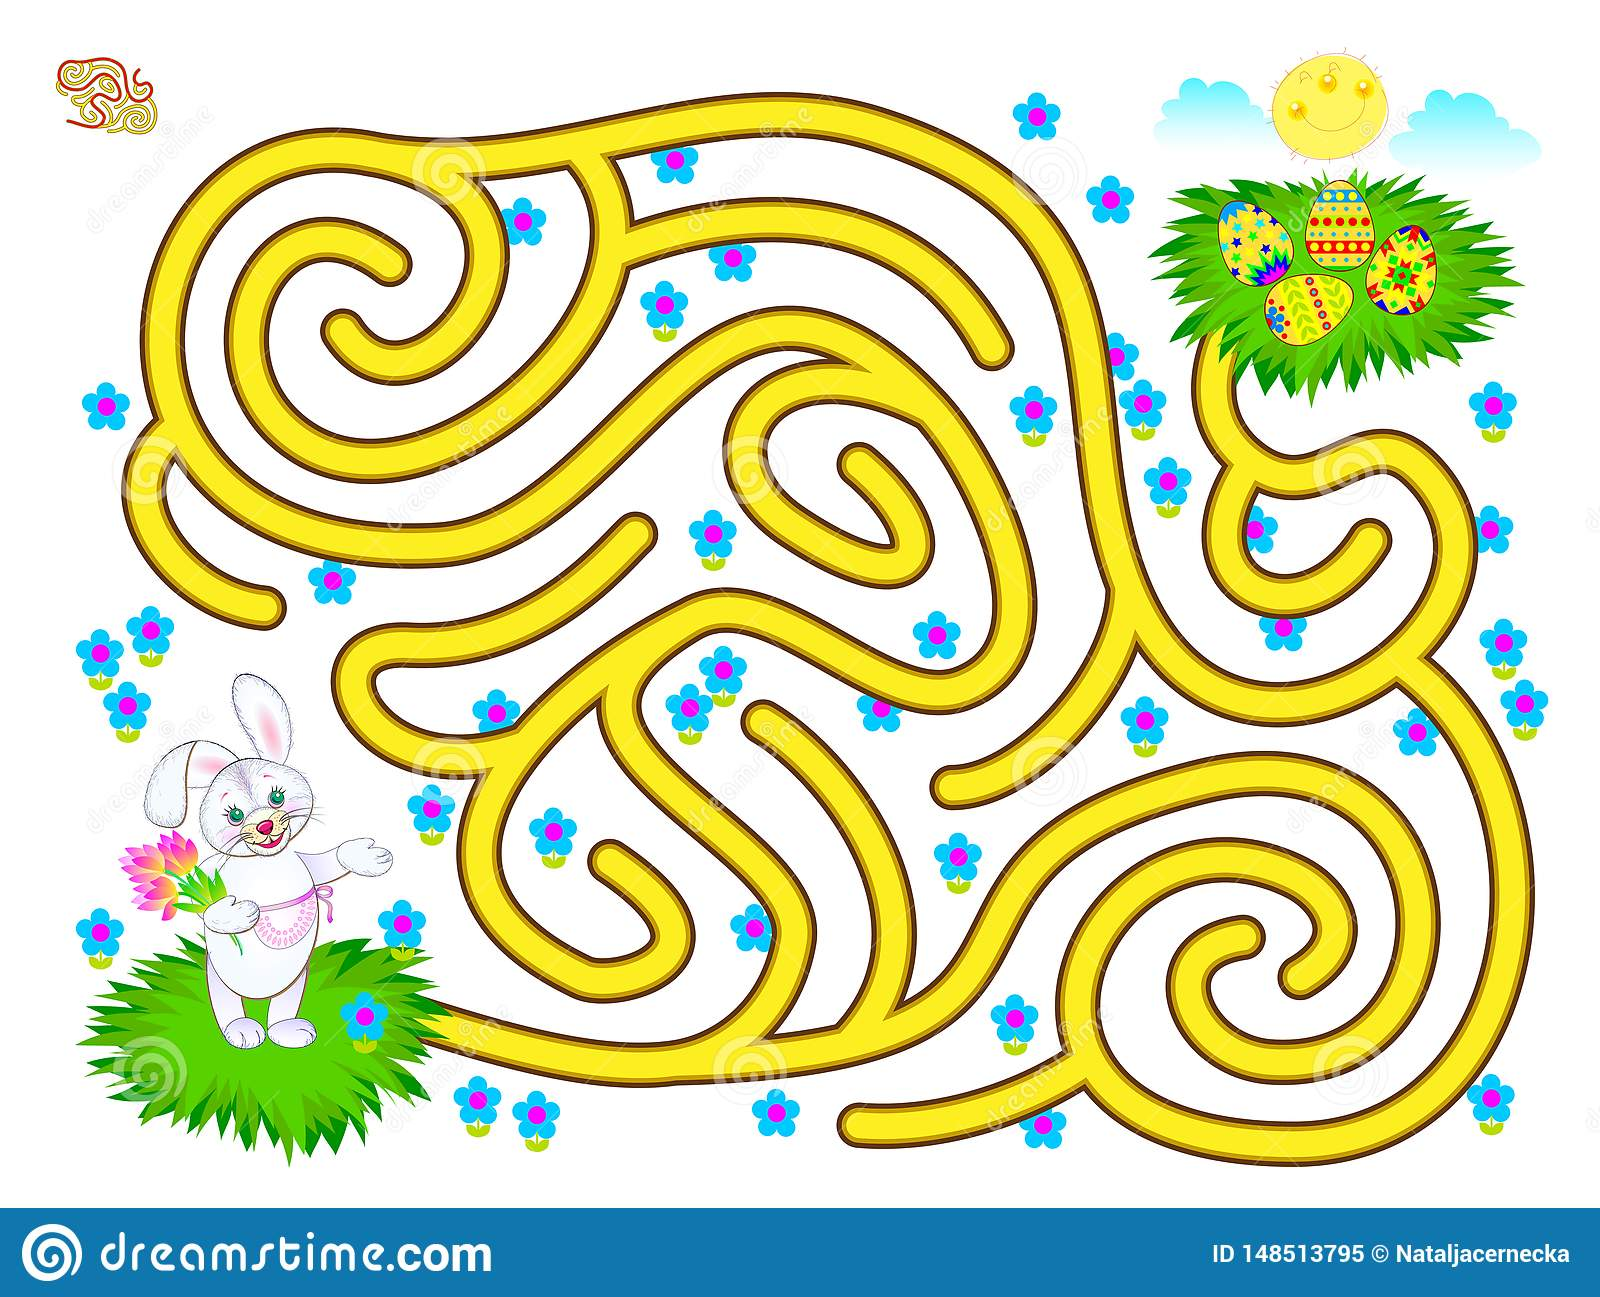 Logic Puzzle Game With Labyrinth For Children Help The